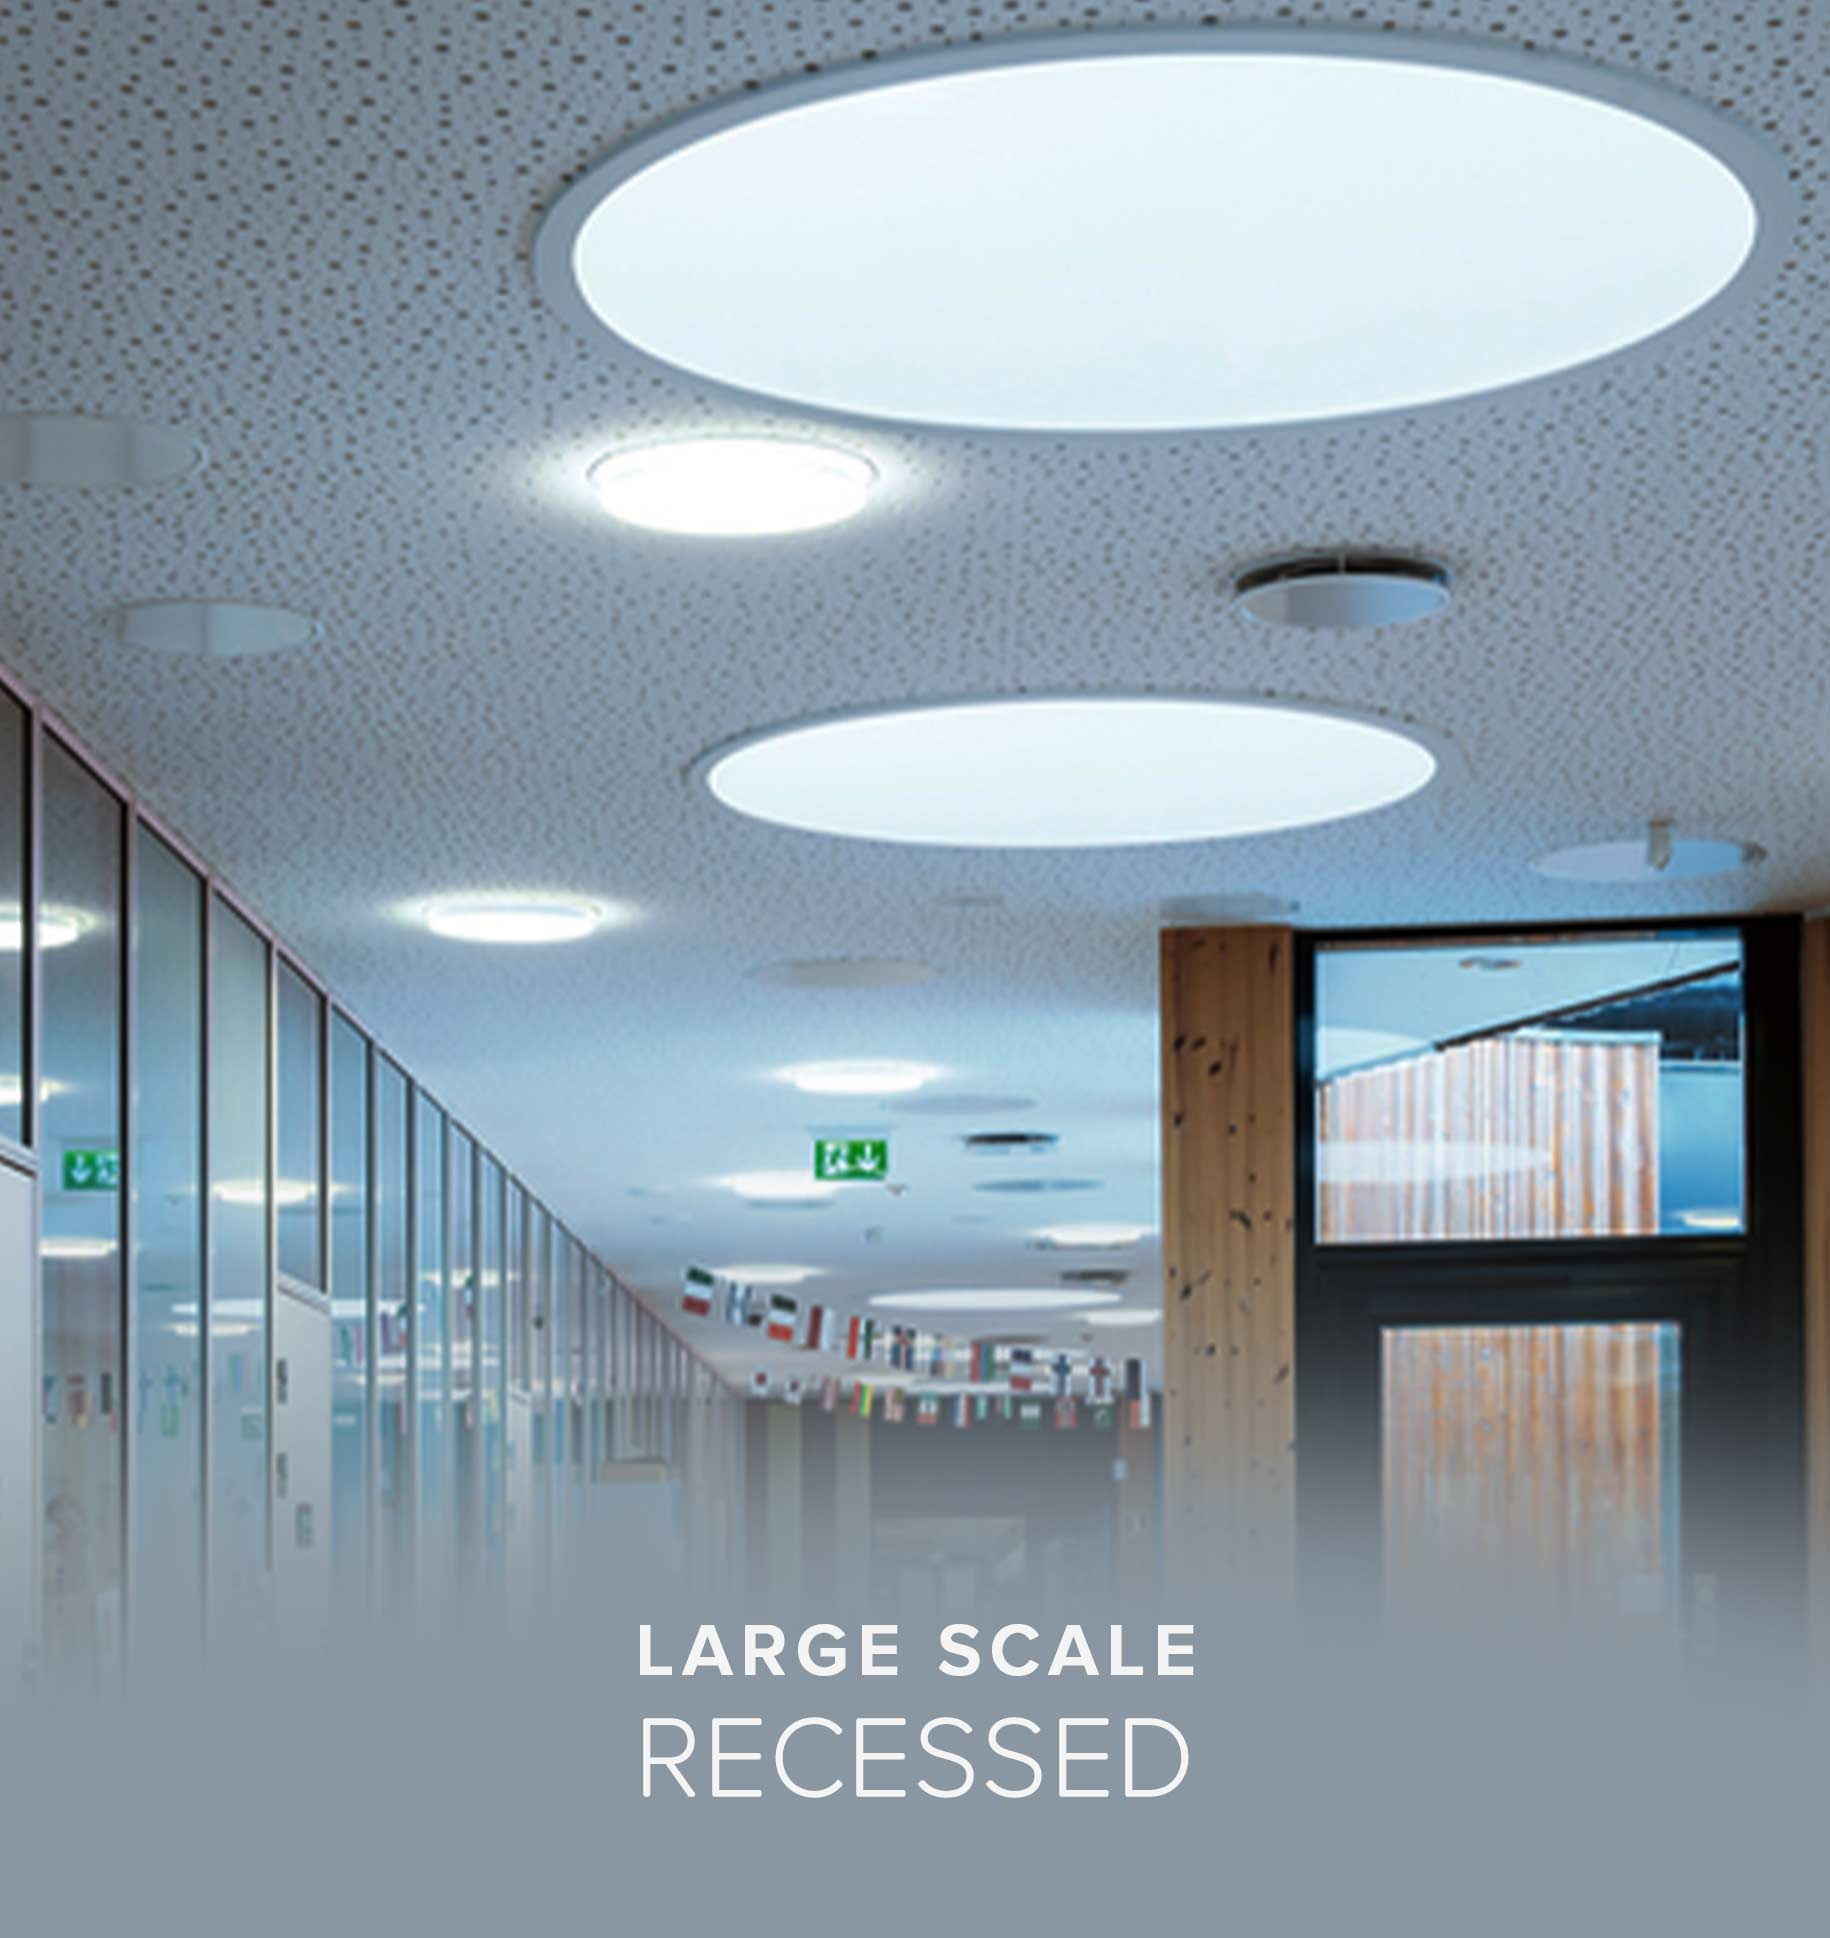 Large Scale Recessed